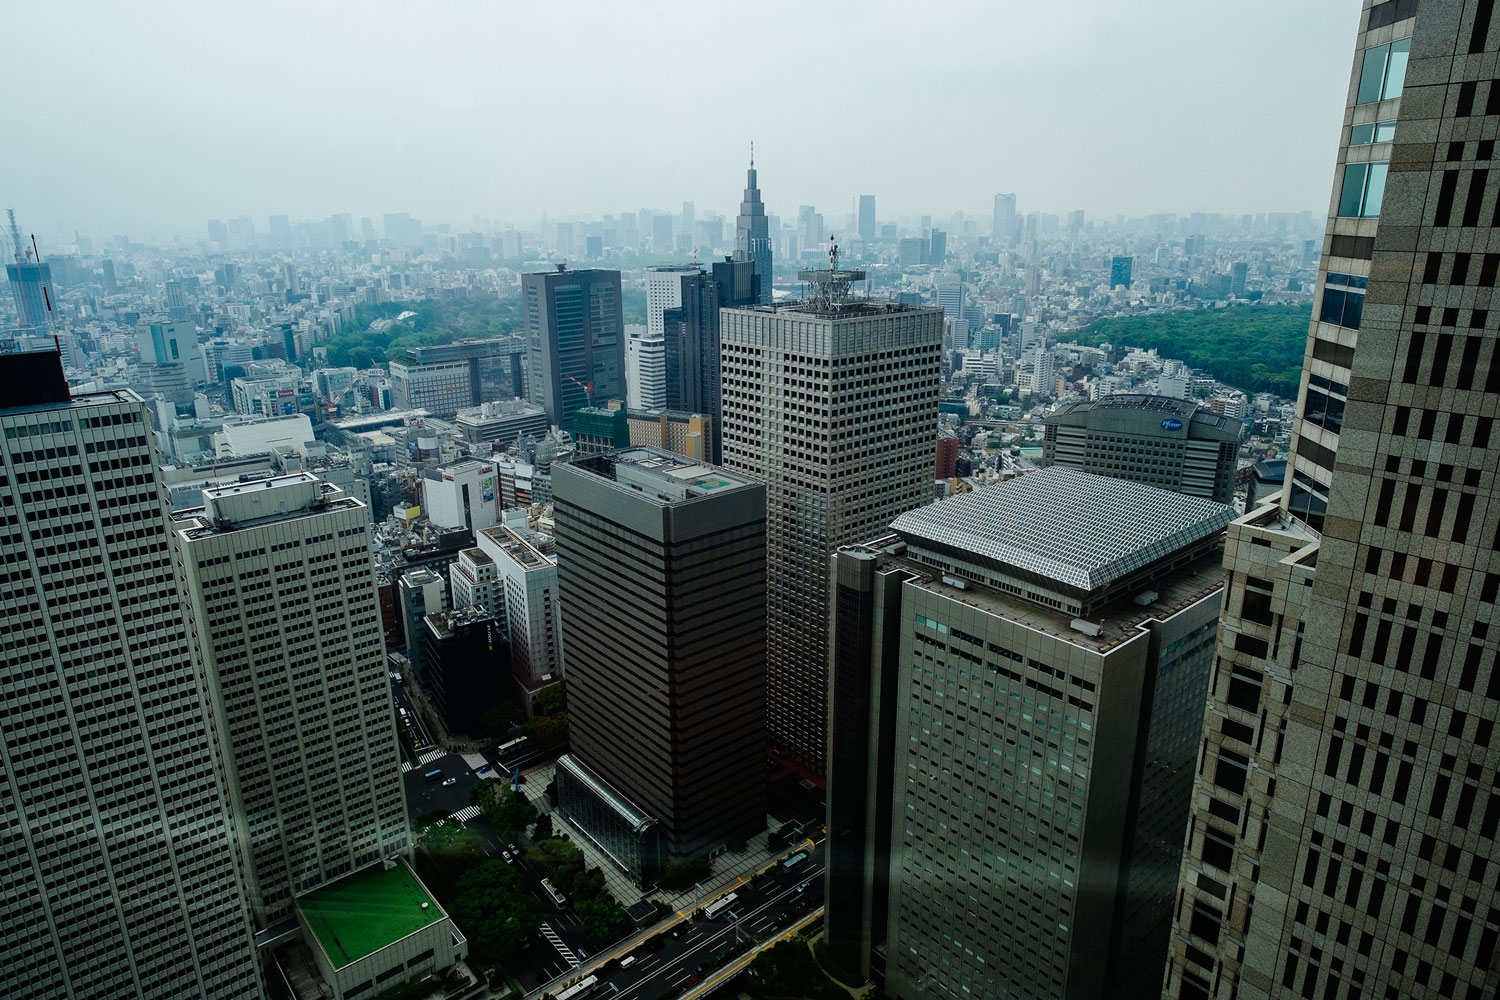 Shinjuku and all its massive skyscrapers, from above.